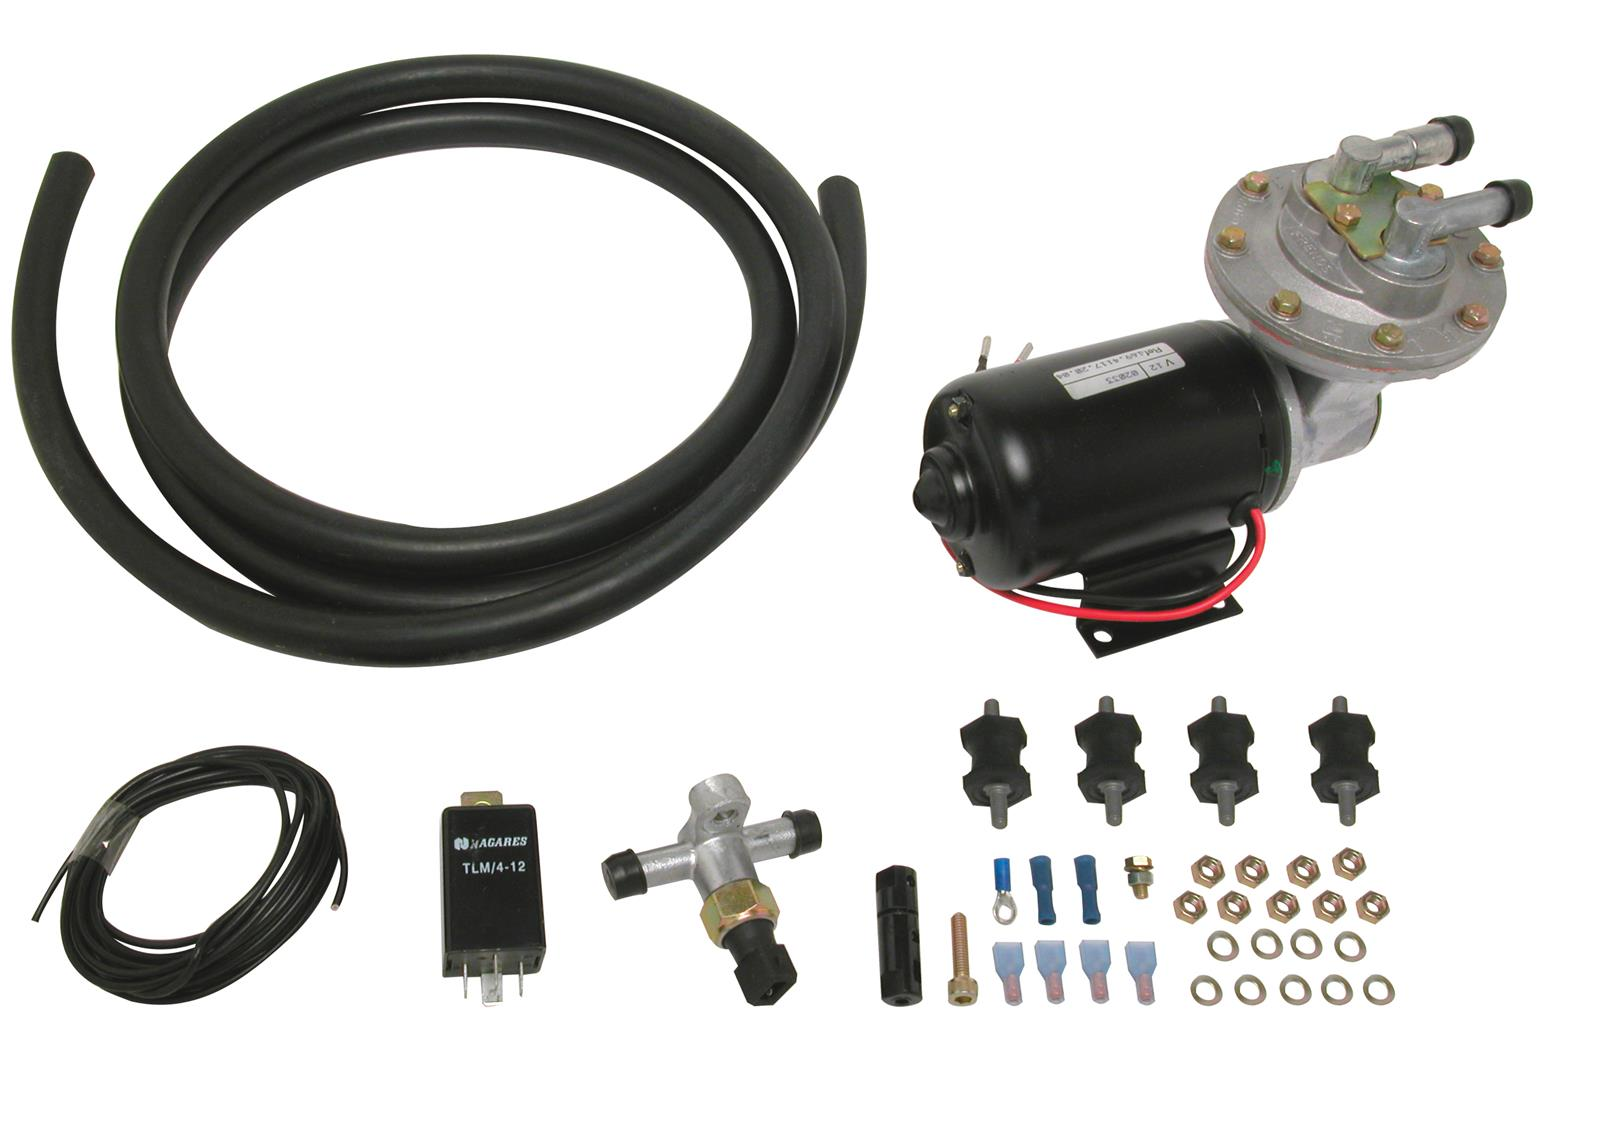 Ssbc Electric Vacuum Pump Kits 28146 Free Shipping On Orders Over Volvo Wiring Diagram 99 At Summit Racing